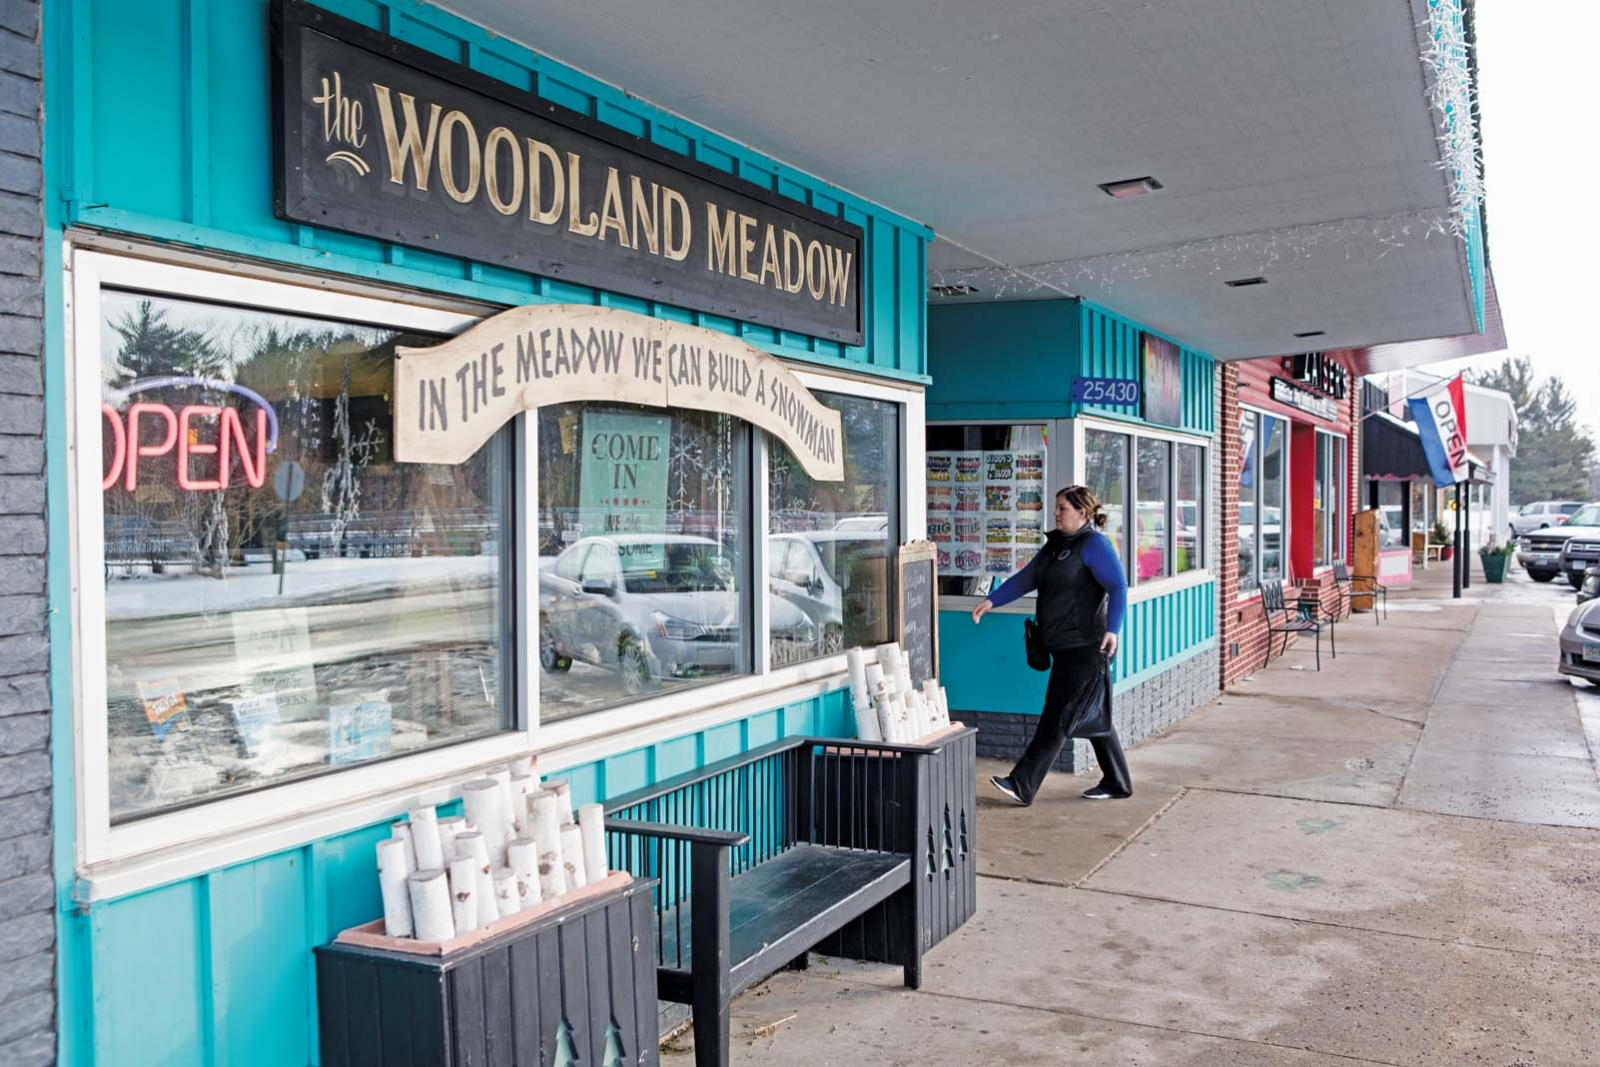 The exterior of Woodland Meadow gift shop.